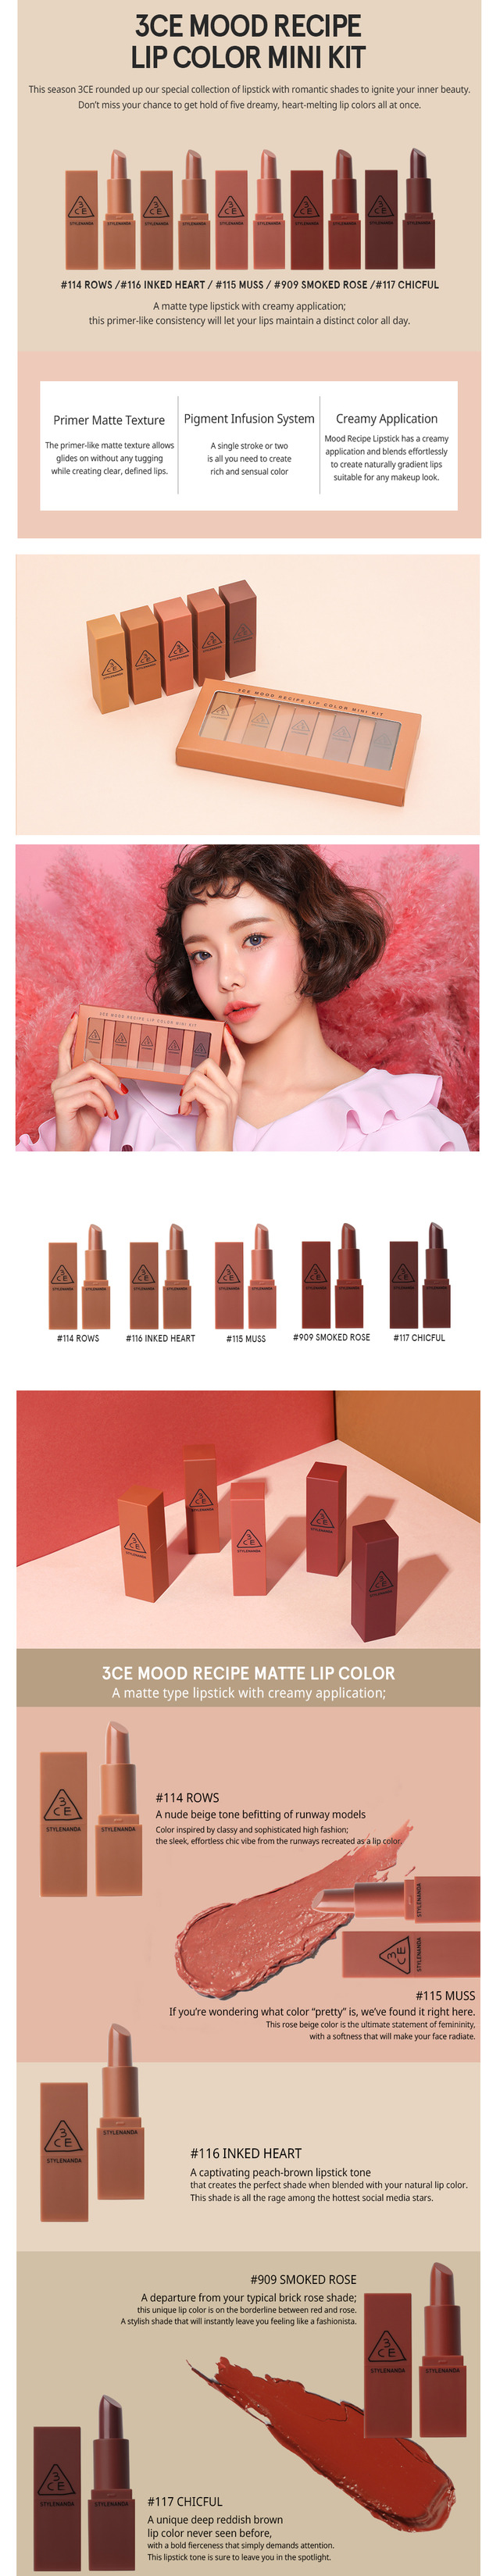 3ce Mood Recipe Lip Color Mini Kit Kokofash Lipstick 13g Each